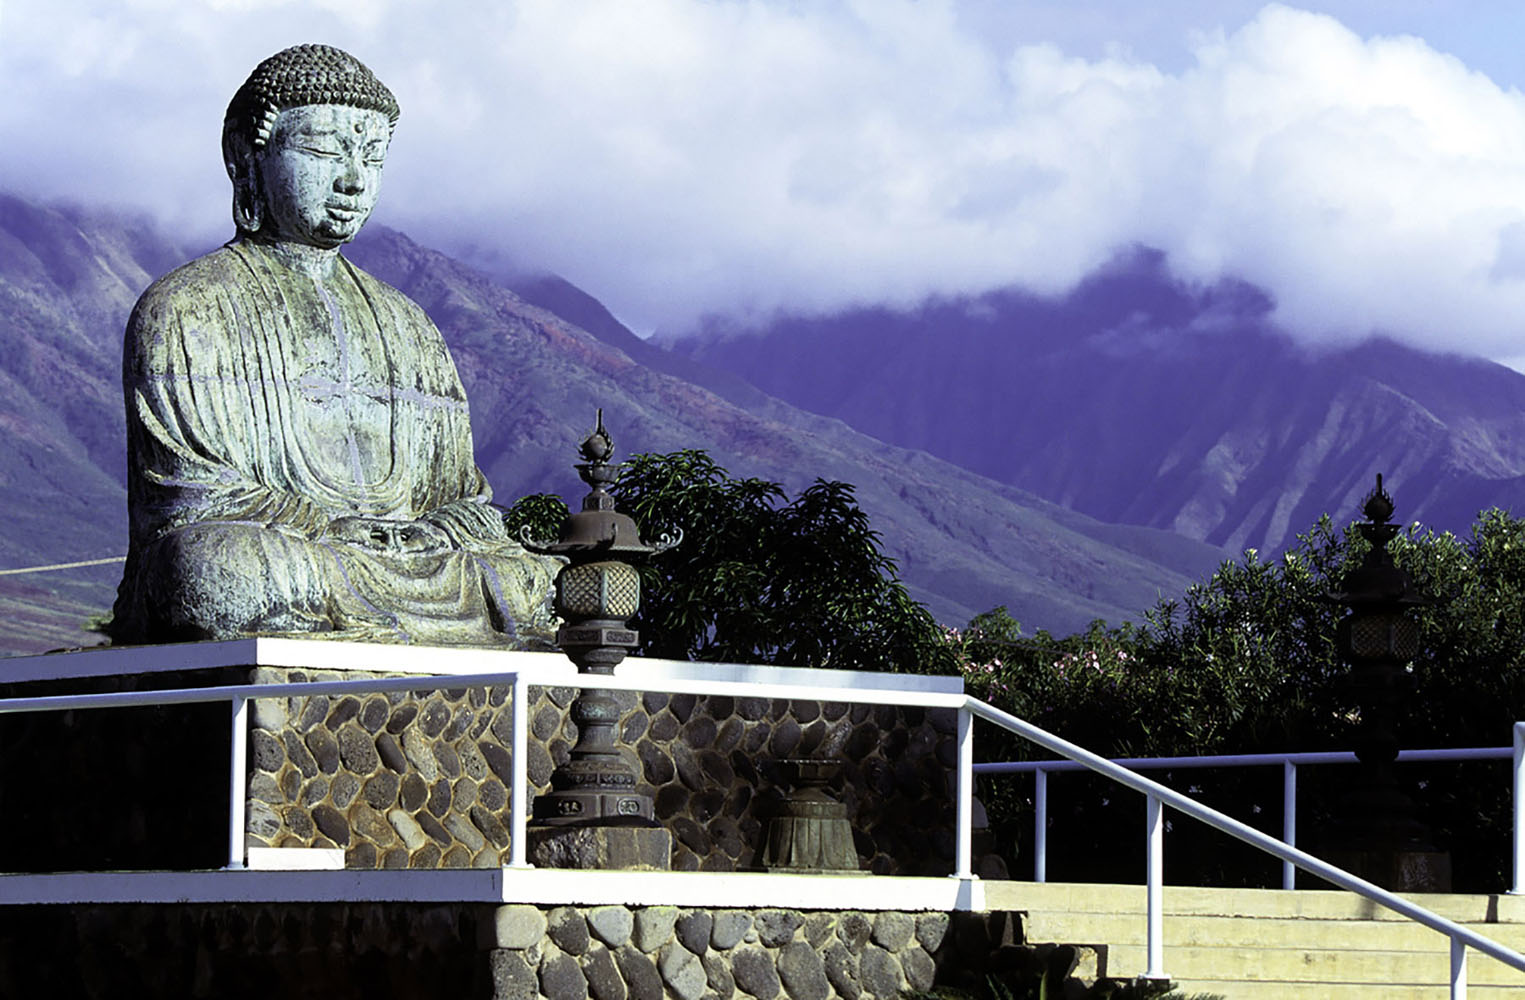 One of the largest Buddha statues in the world at the Jodo Mission in Lahaina